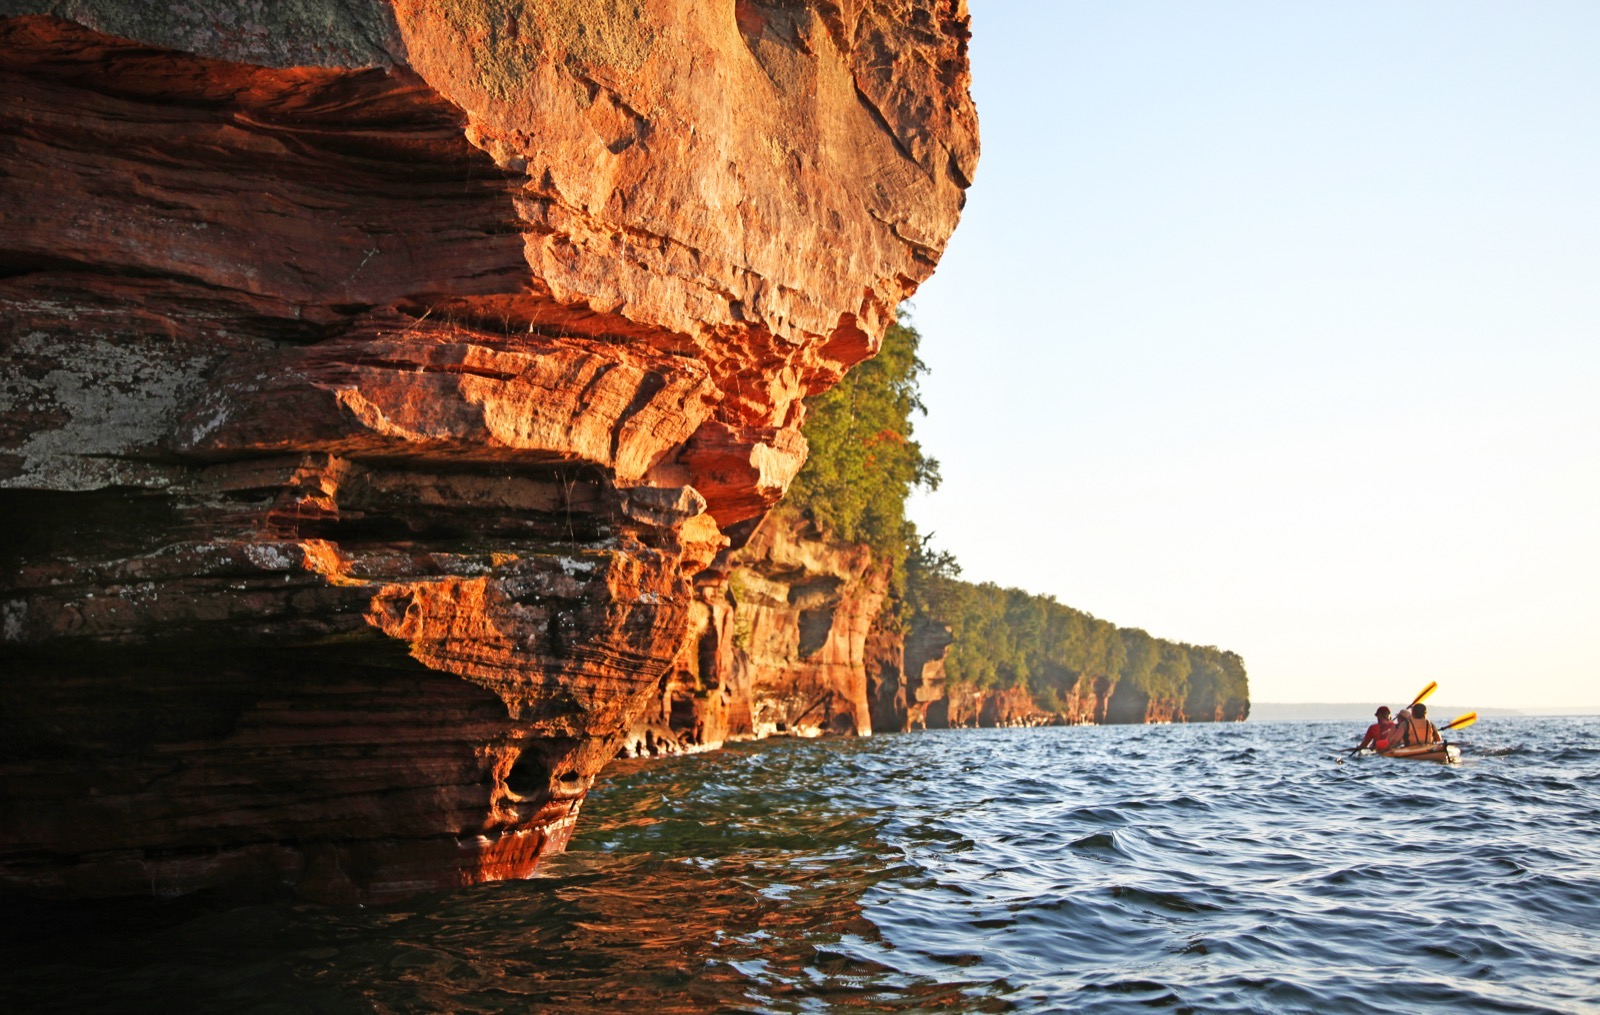 Red sandstone cliffs jutting out over the lake are lit up by the sunset as kayakers paddle away in the distance.